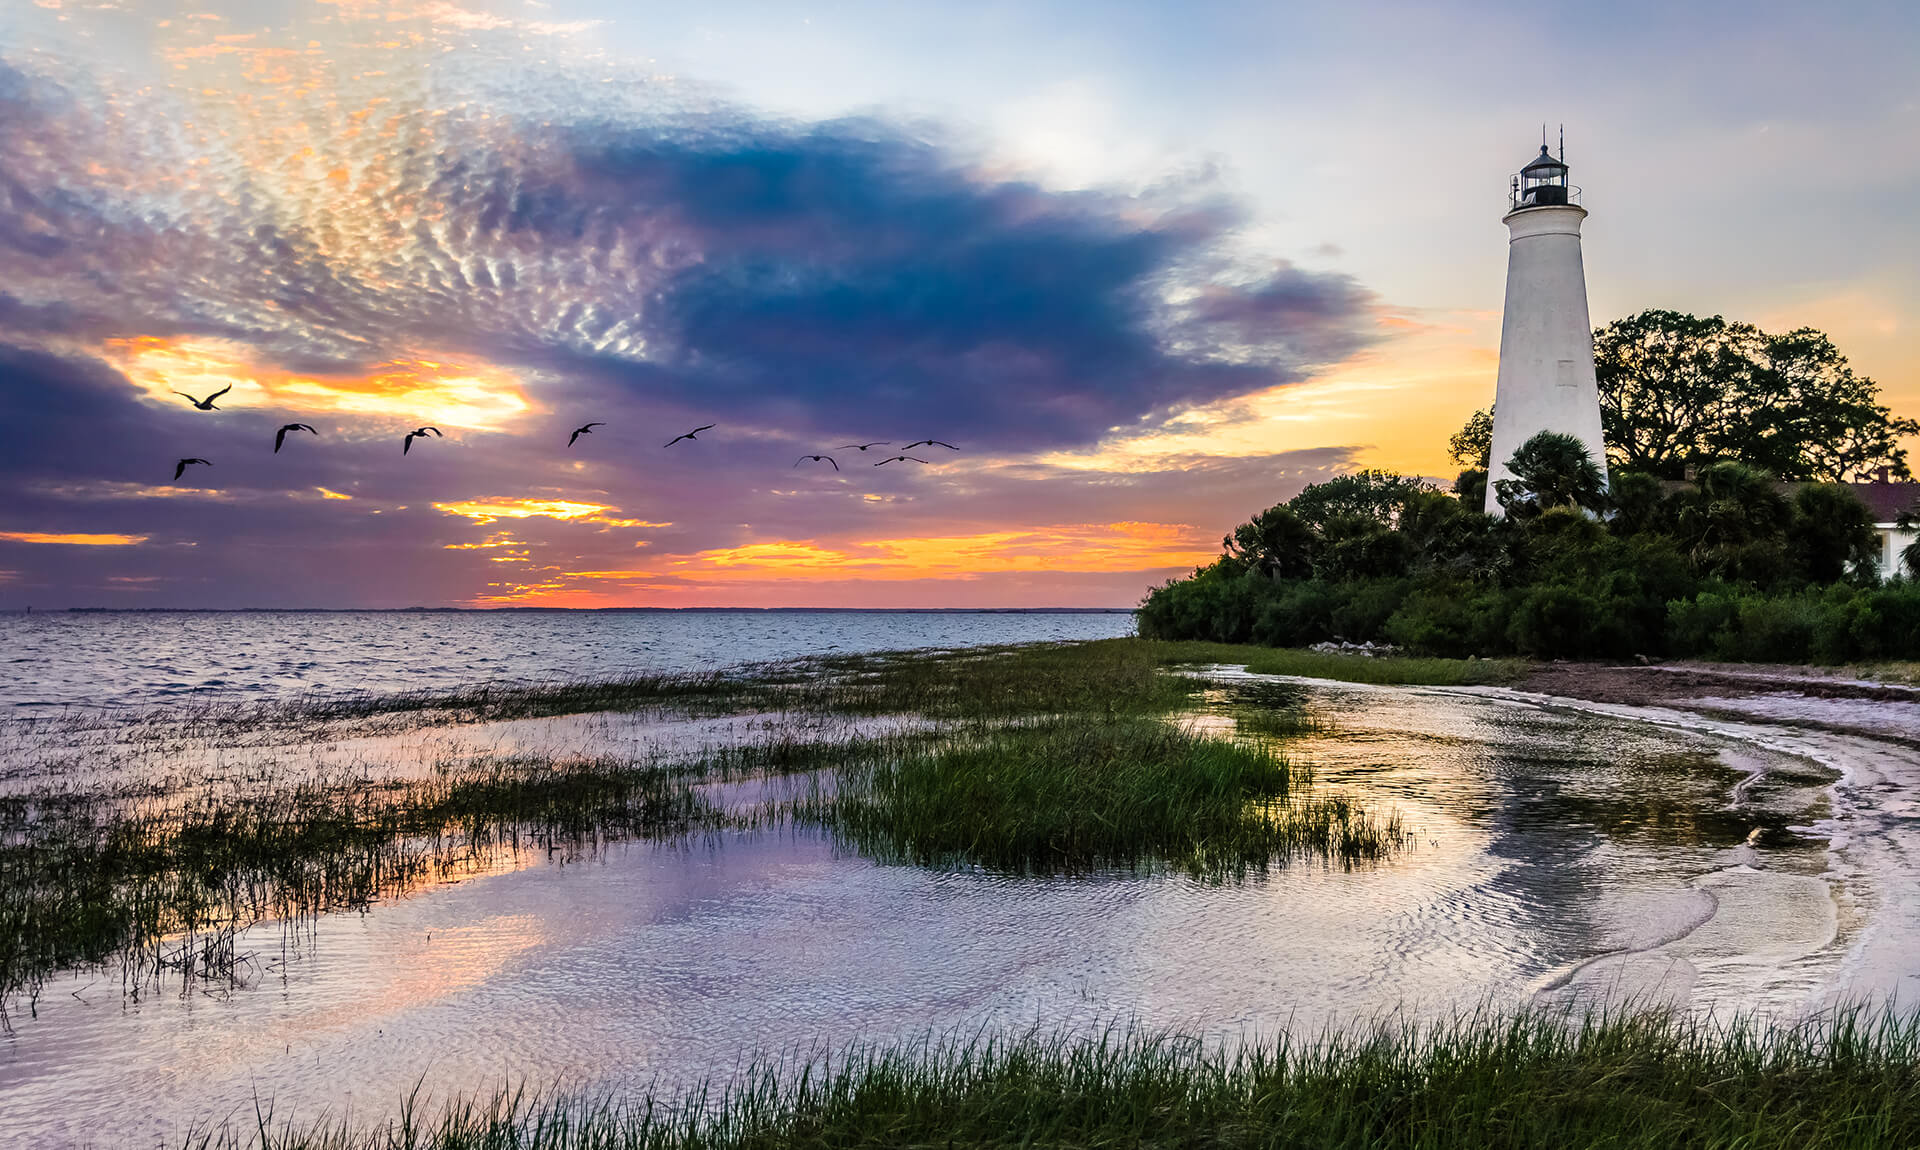 Cape Florida Lighthouse Water Ridge at Sunset